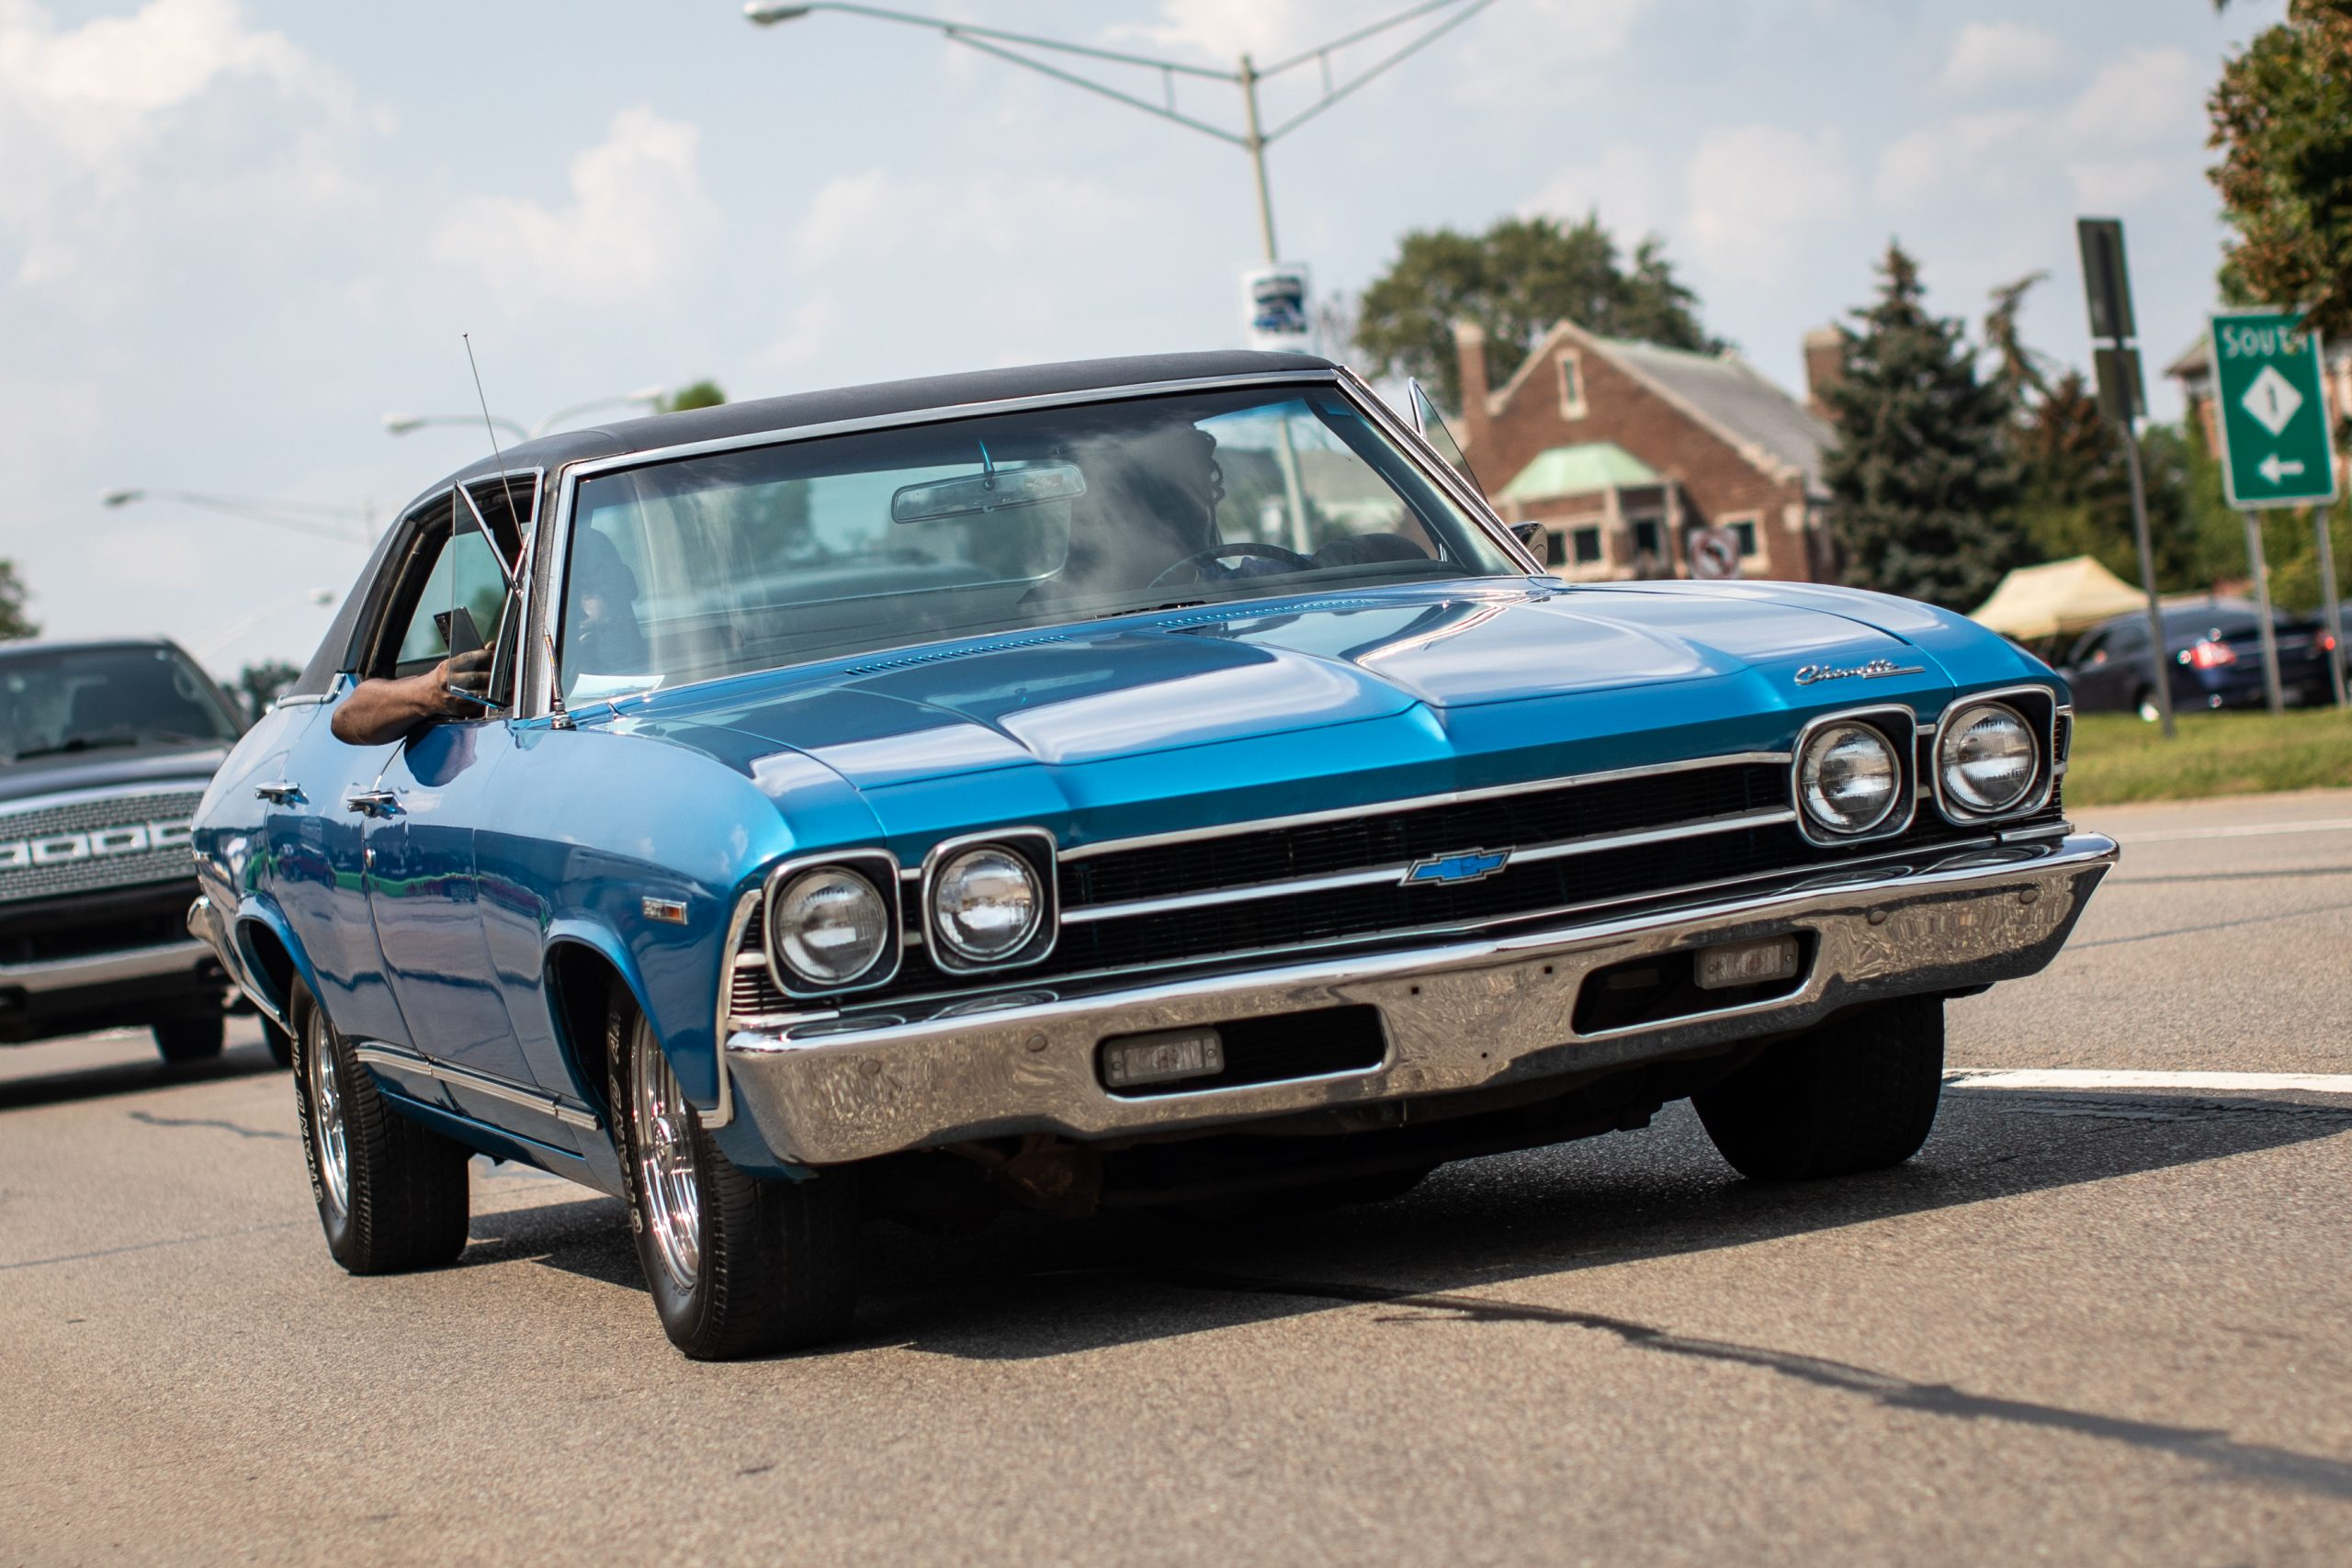 2021 Dream Cruise woodward ave action chevrolet